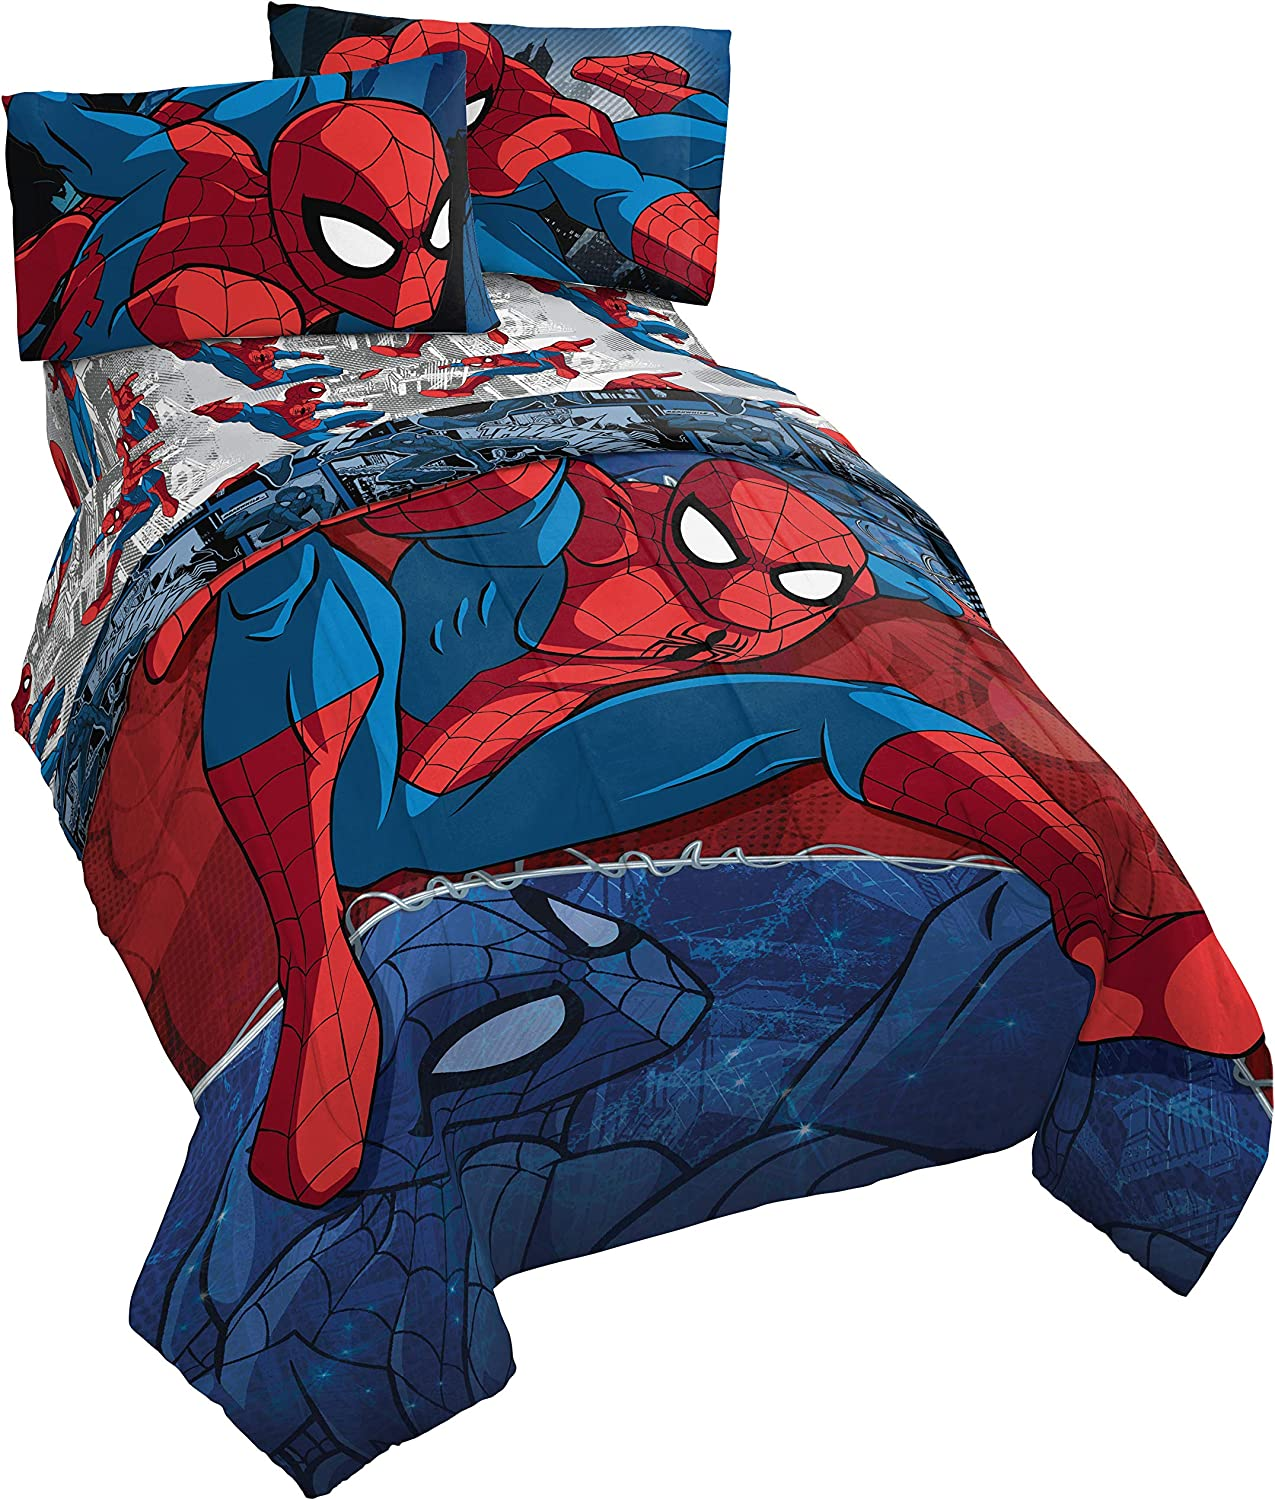 Jay Franco Marvel Spiderman Burst 4 Piece Twin Bed Set - Includes Reversible Comforter & Sheet Set - Bedding - Super Soft Fade Resistant Microfiber - (Official Marvel Product)